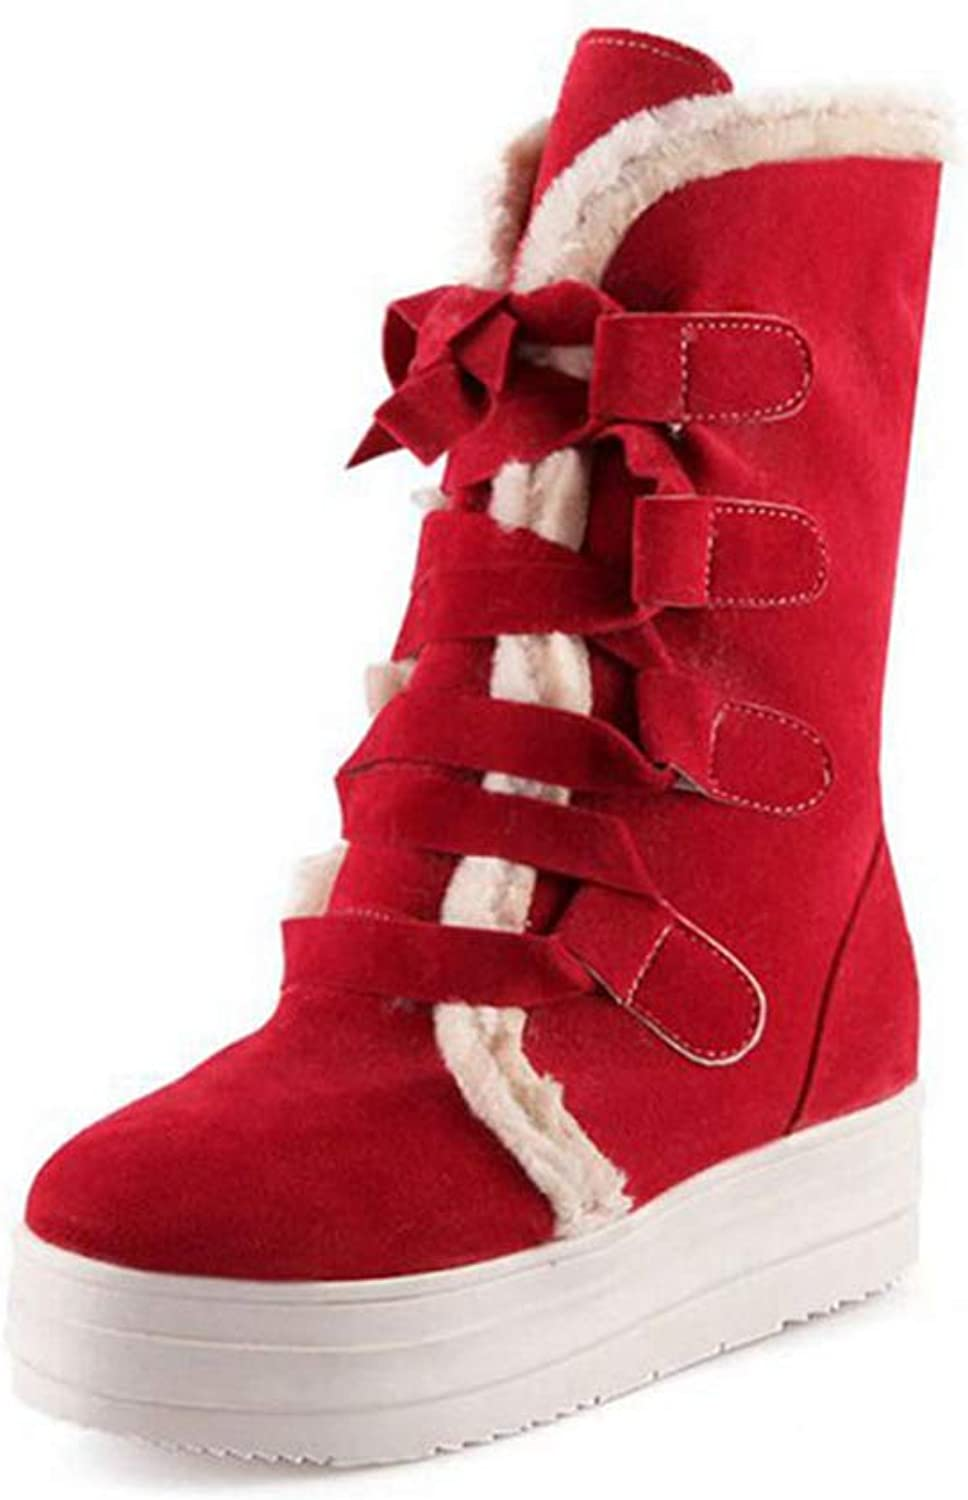 Zarbrina Womens Winter Warm Calf Boots Rubber Sole Round Toe Lace Up Fleece Lined Plush Roman Snow shoes